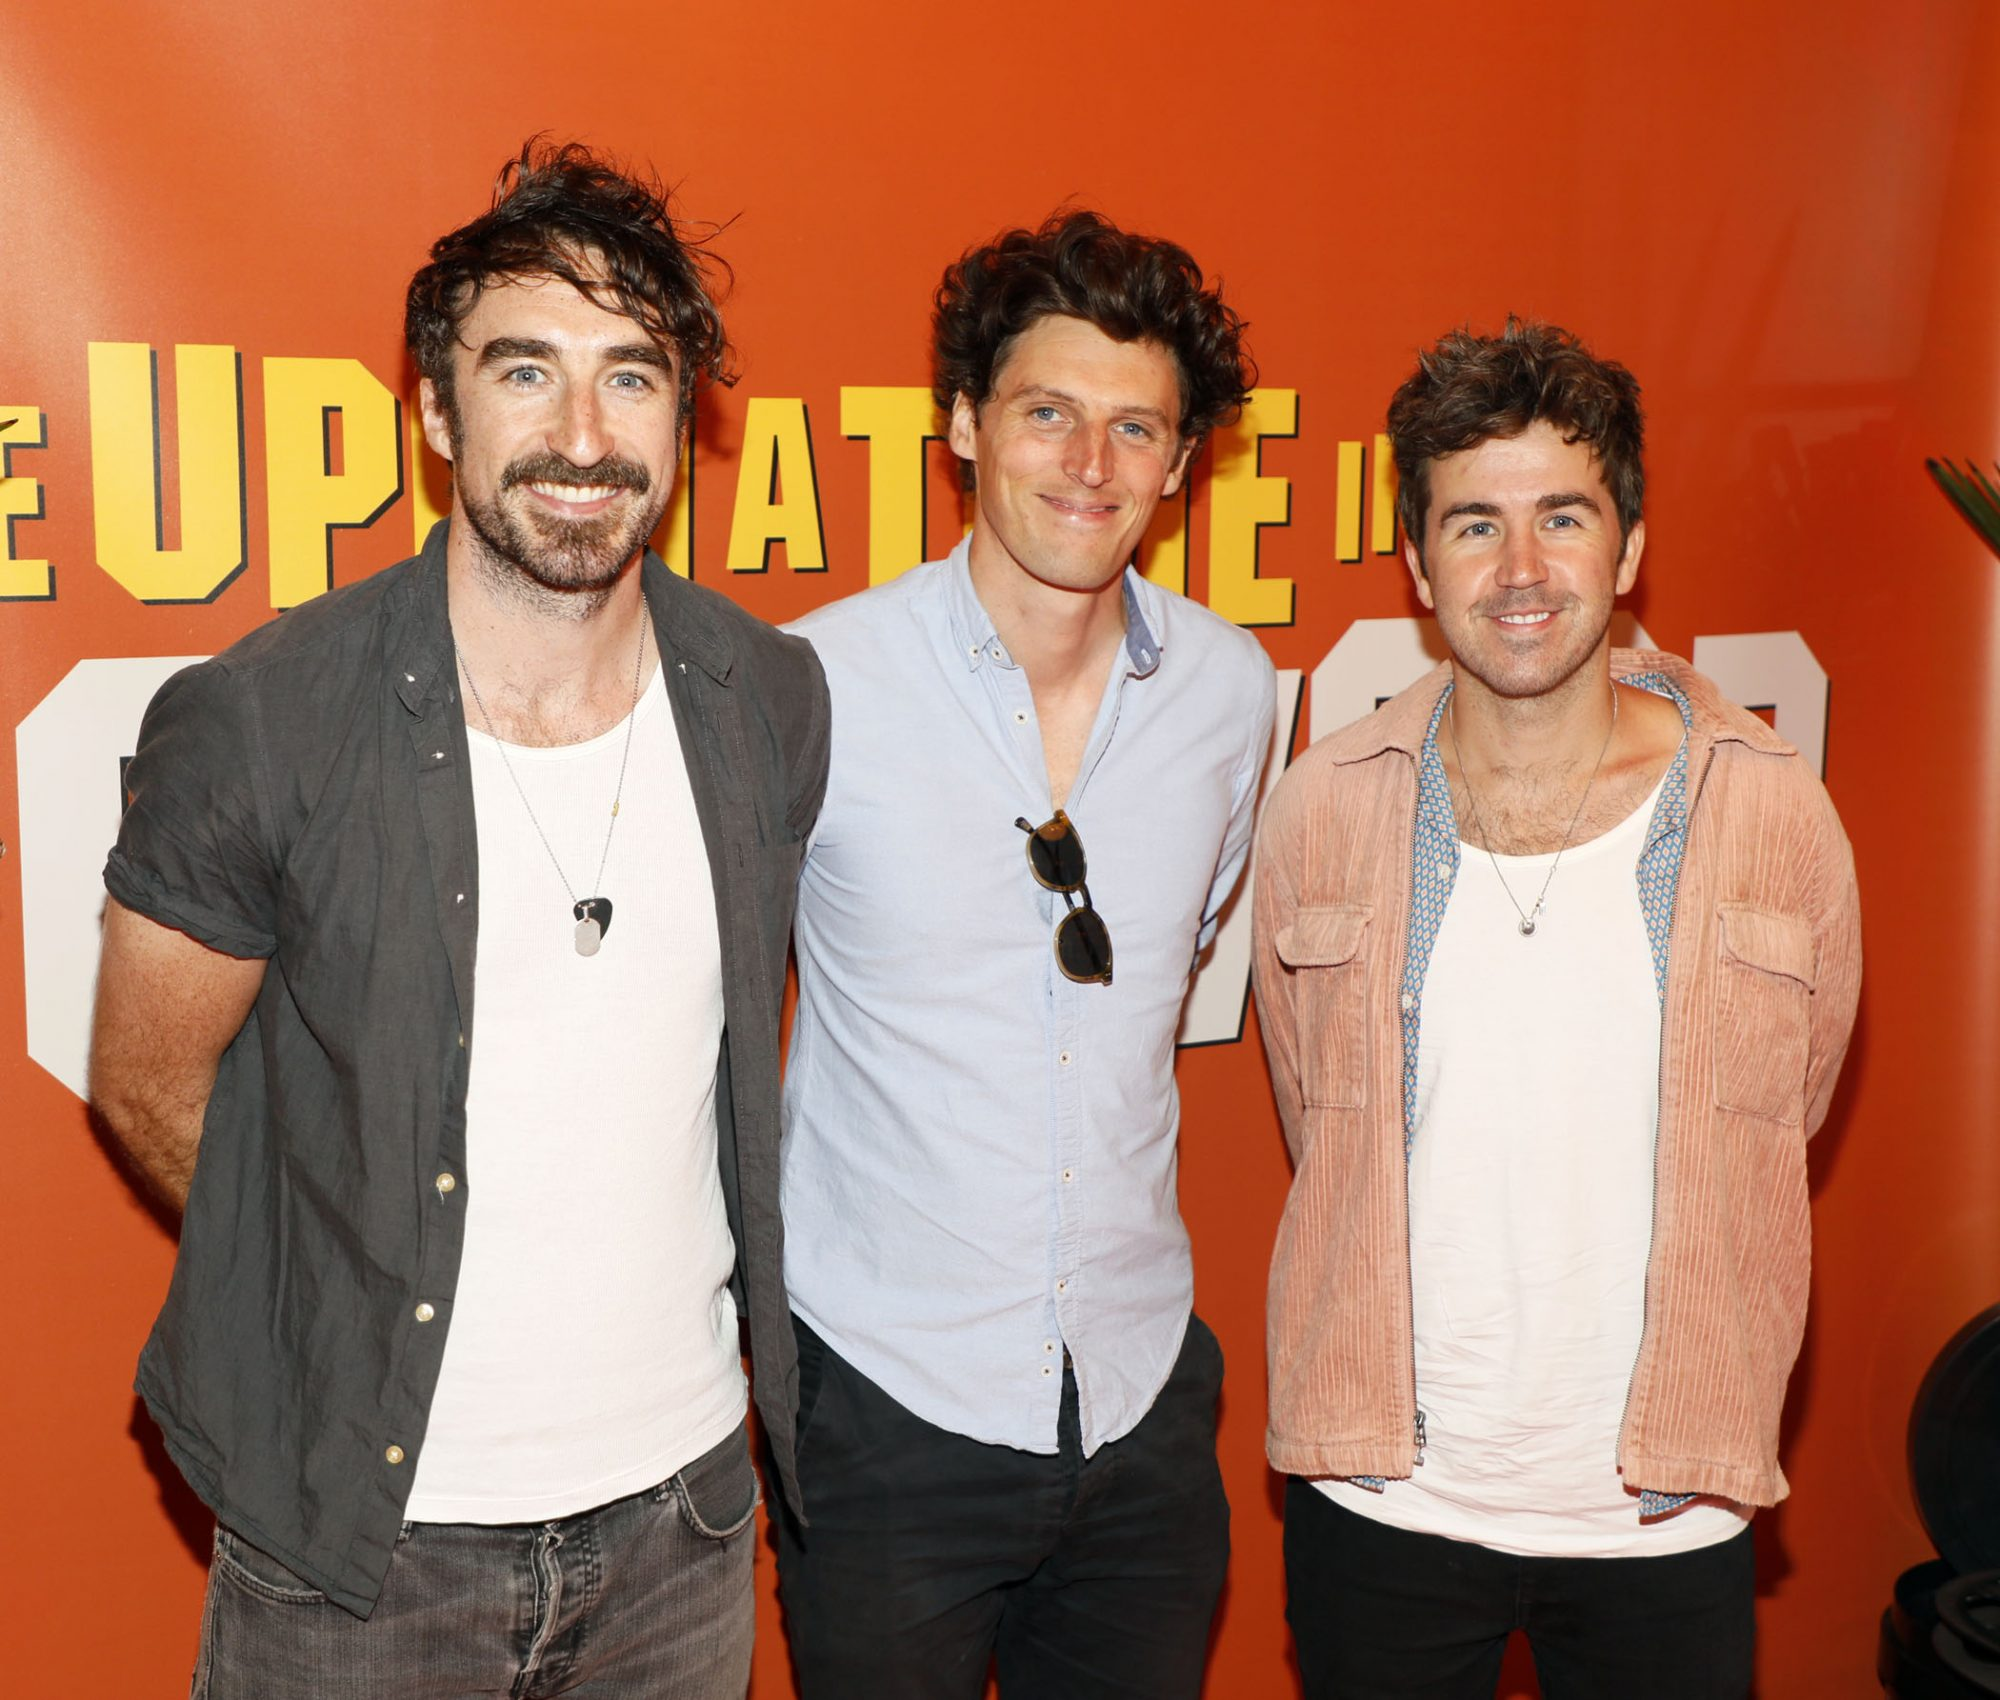 Danny O'Reilly, Dave McPhilips and Graham Knox from the Coronas at the Multimedia Screening of Once Upon A Time In Hollywood at the Stella Theatre, Rathmines, in cinema August 14th. Photo: Kieran Harnett